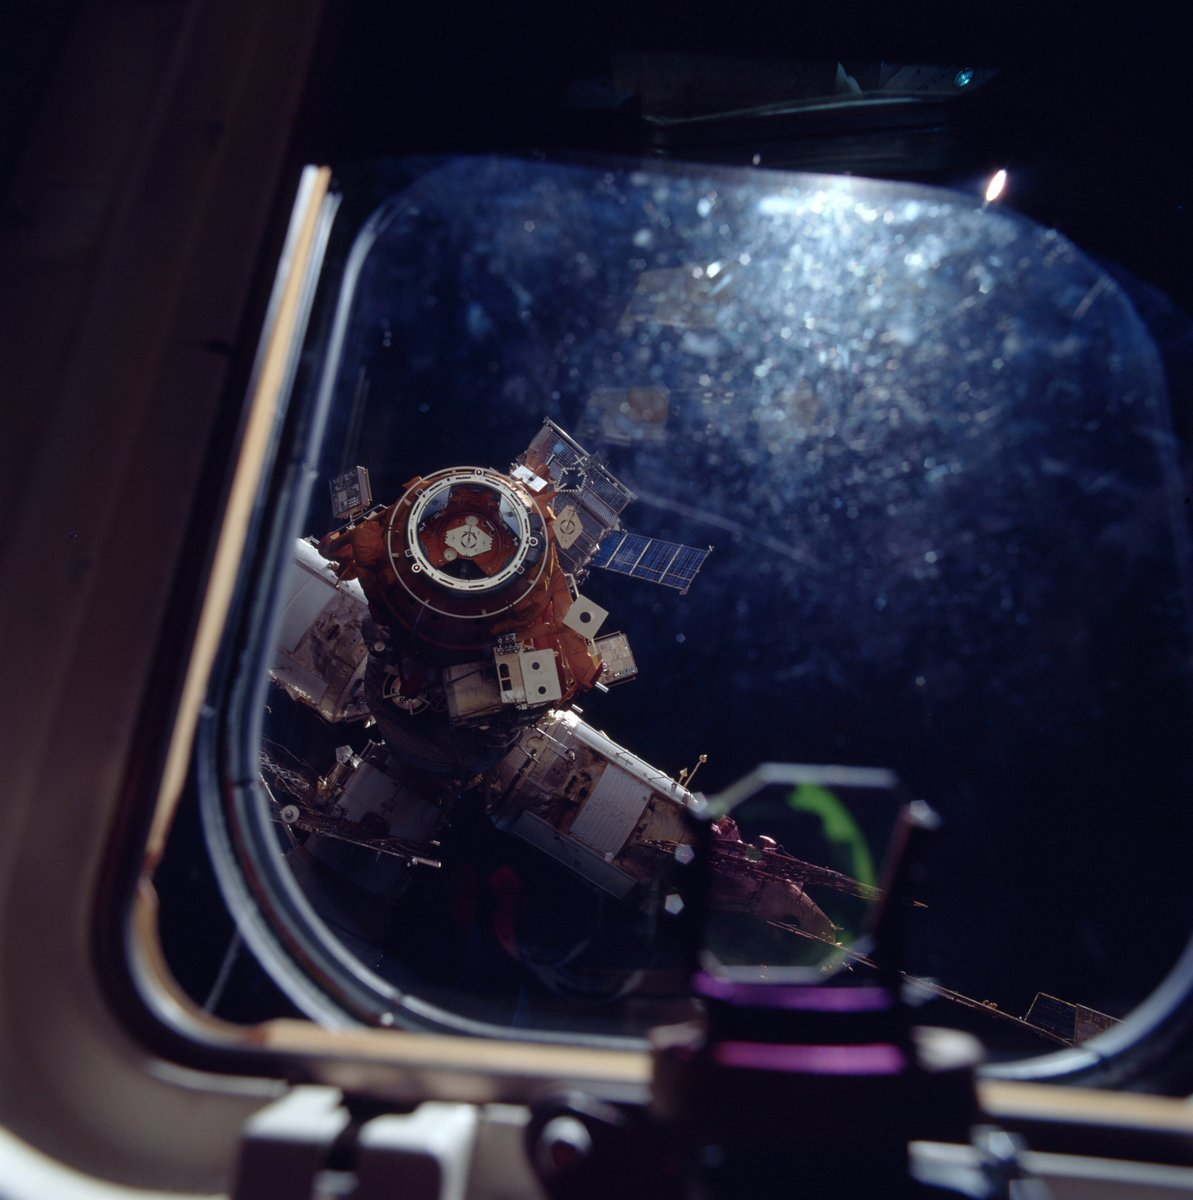 Space Shuttle Atlantis approaching the docking port of Mir pic.twitter.com/b73WRead6X